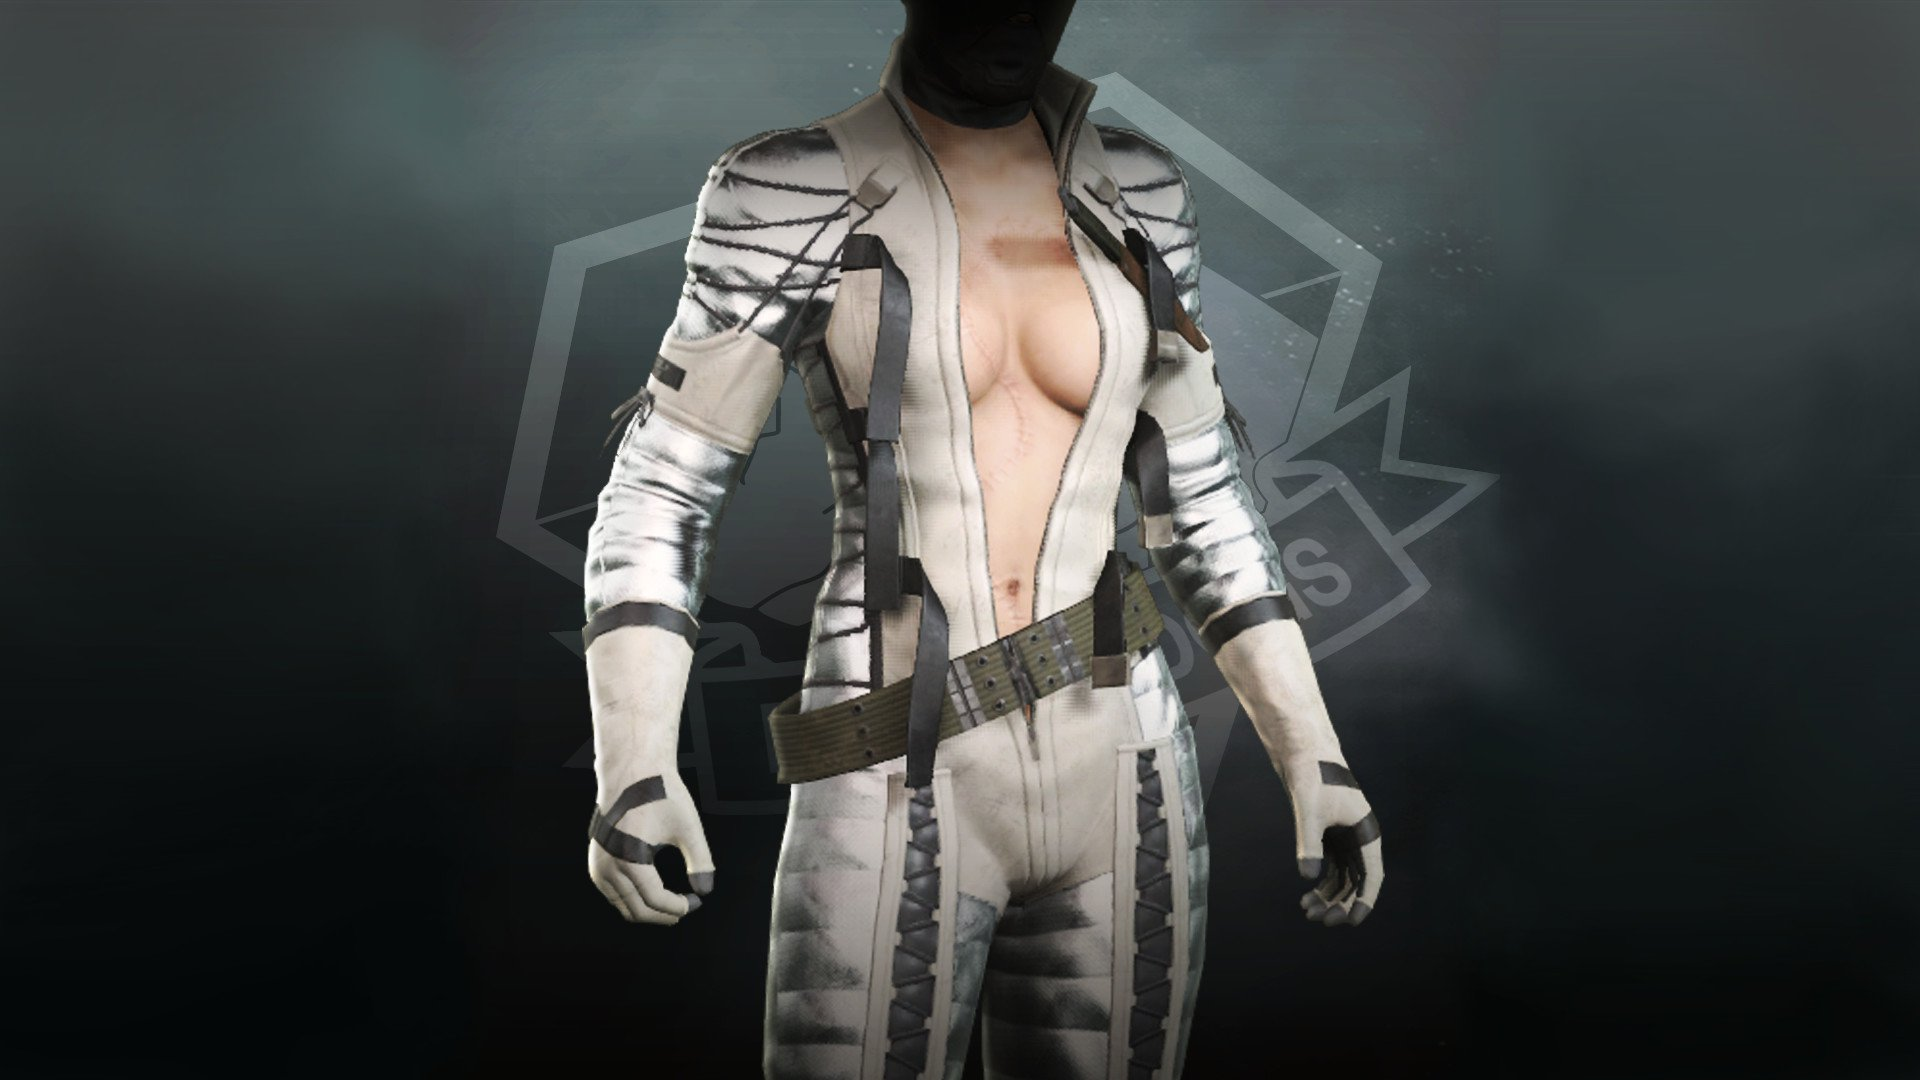 Metal Gear Solid V The Phantom Pain Sneaking Suit The Boss 1